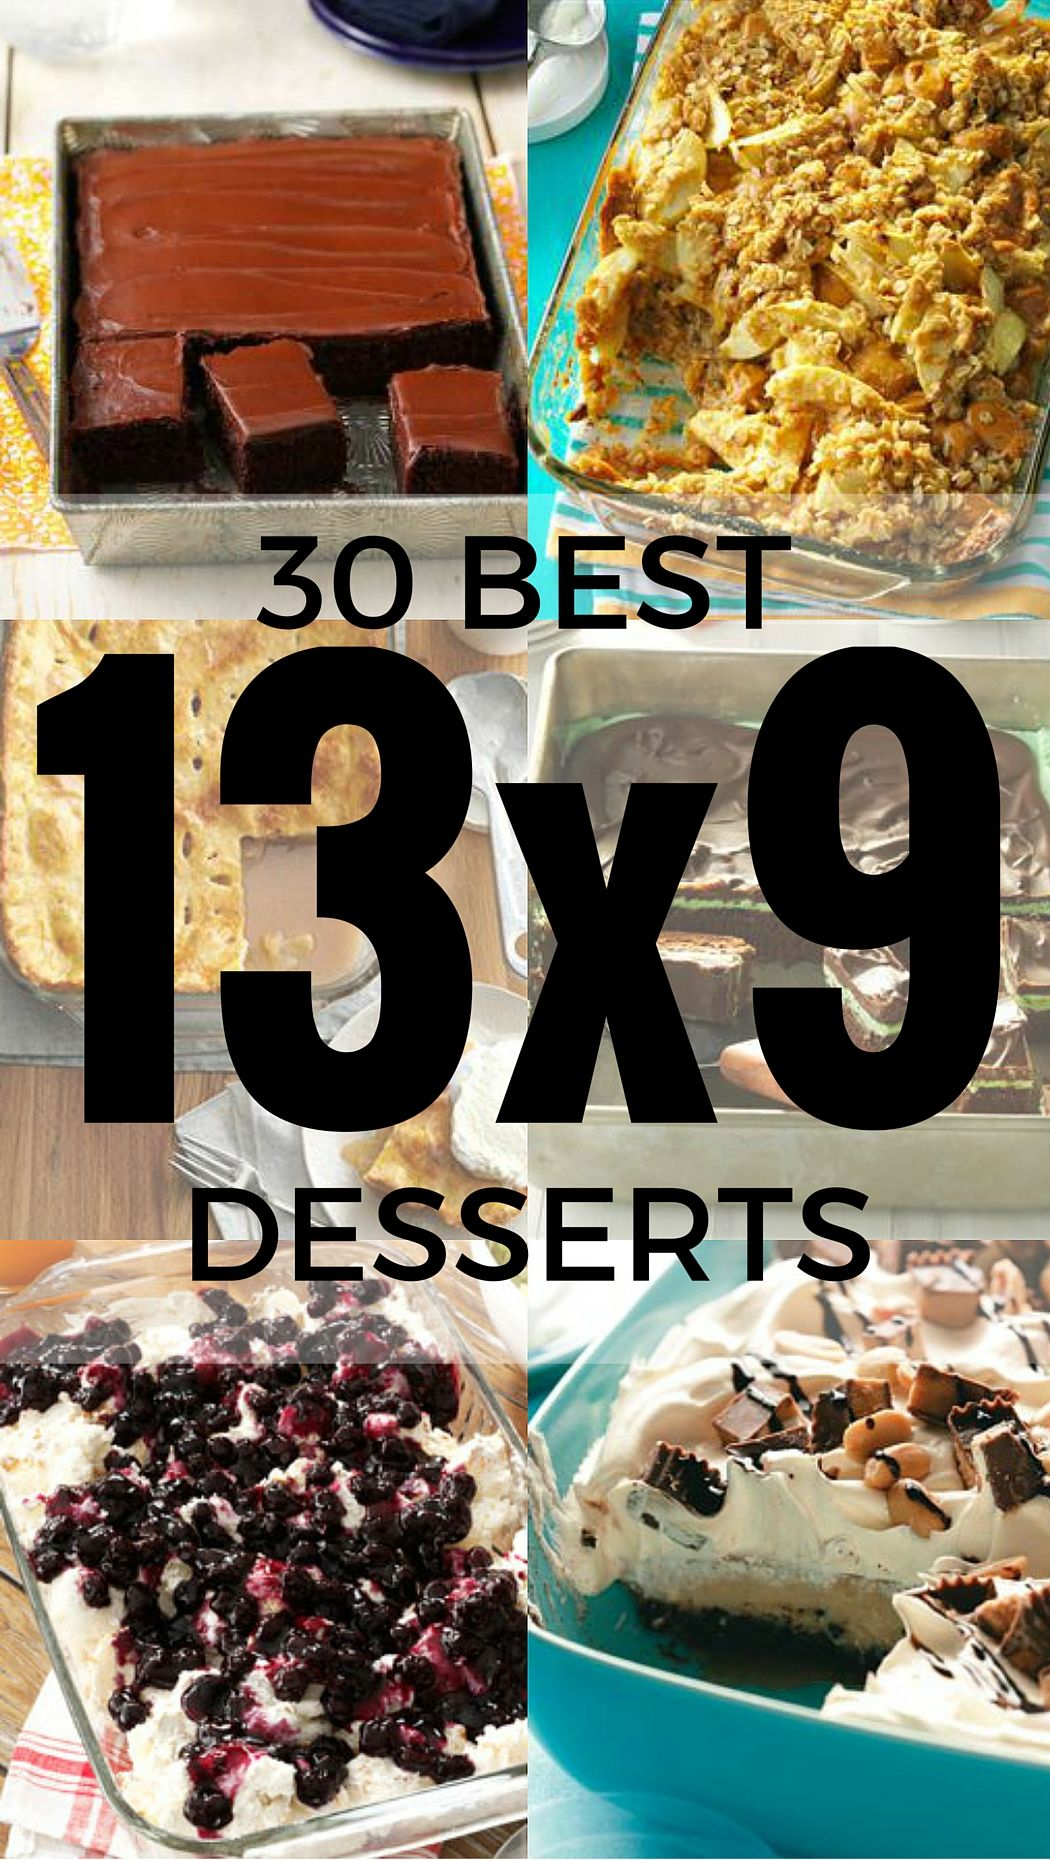 100 Potluck Desserts Made in a 13x9 Pan